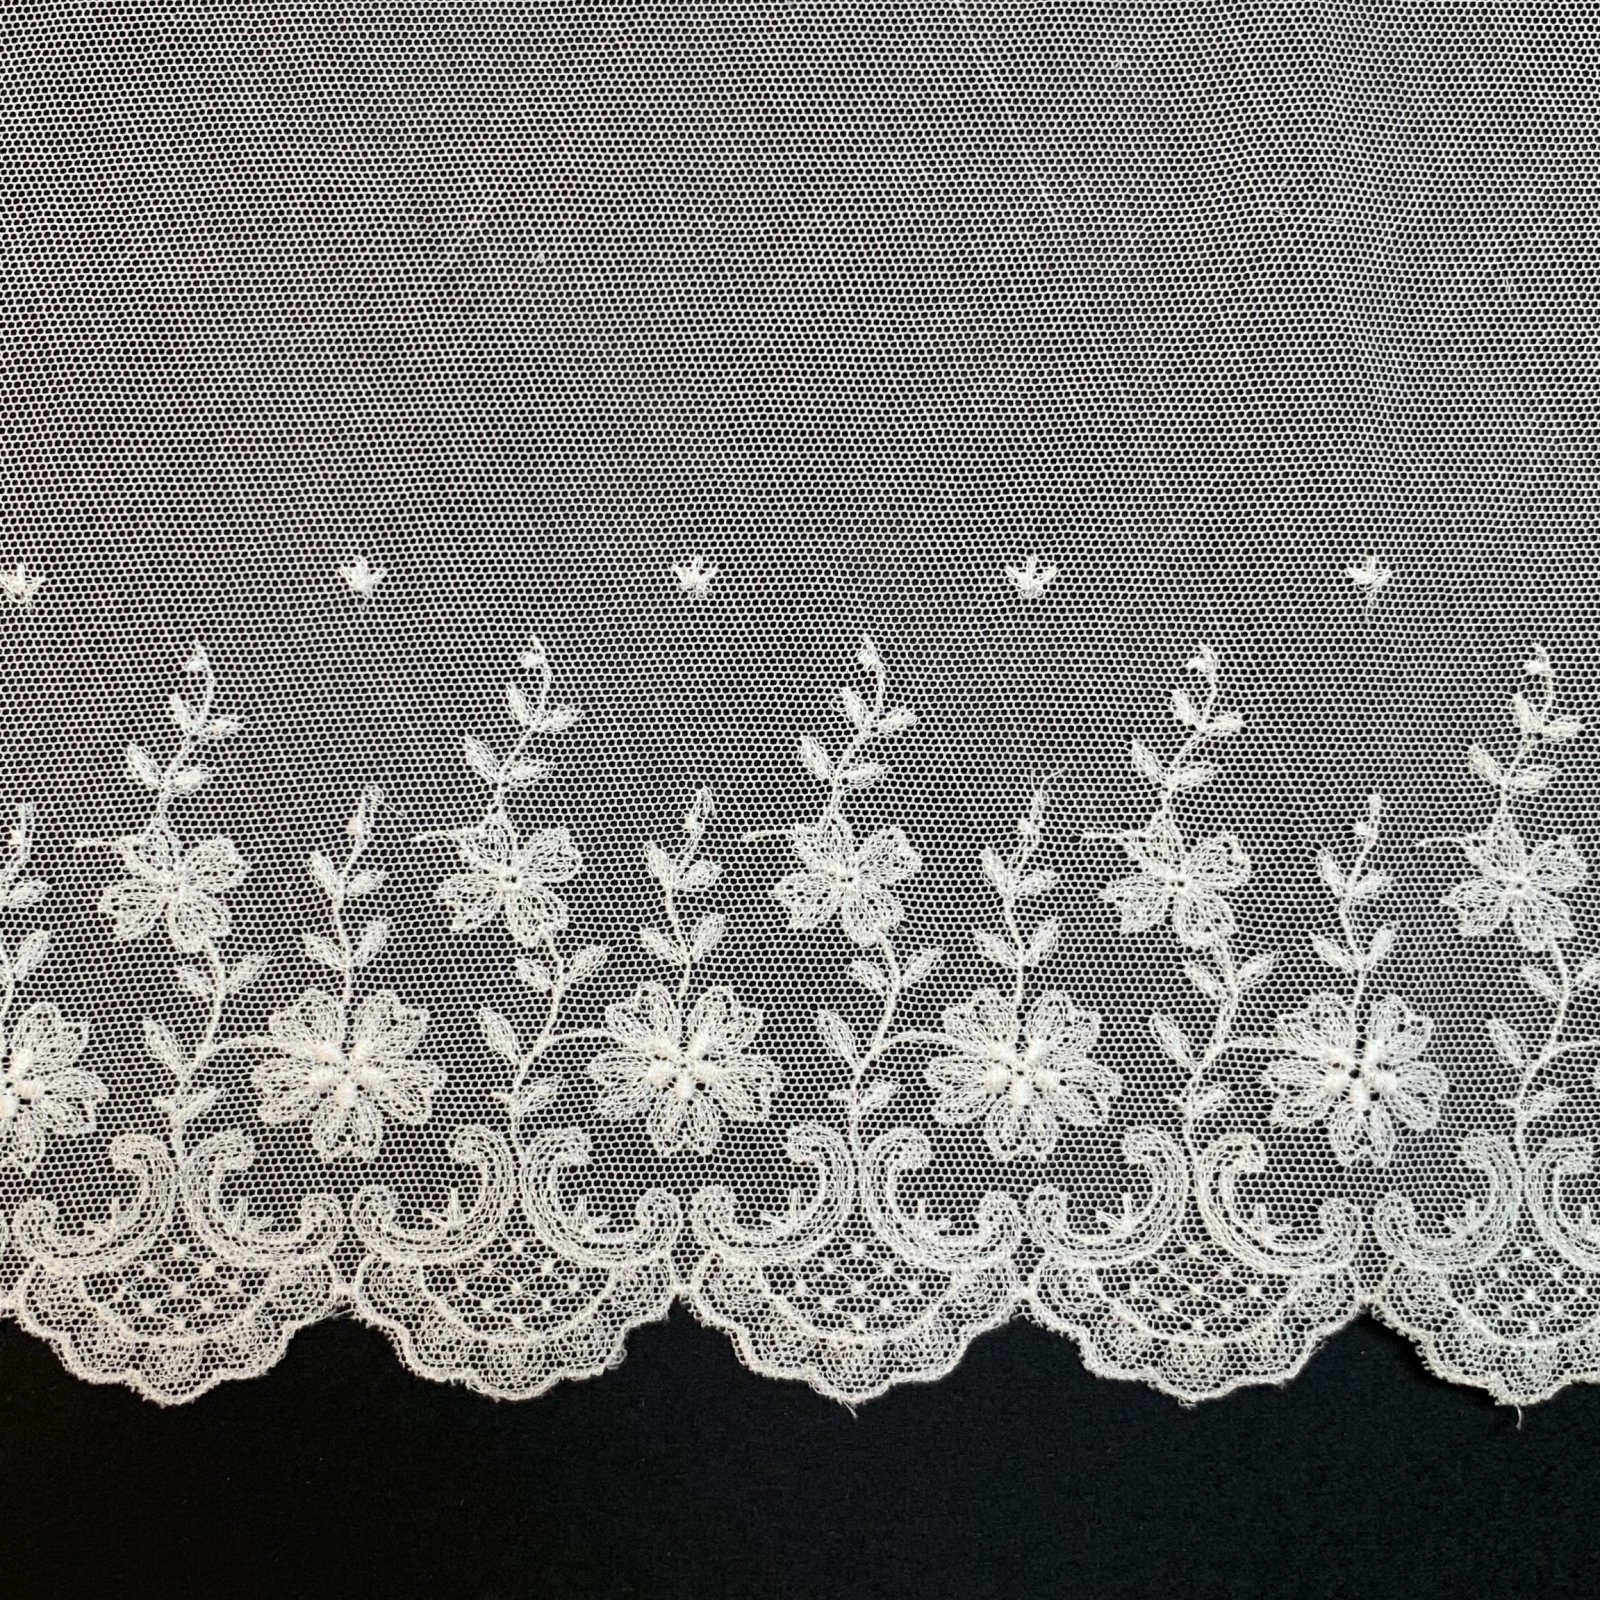 Netting Lace Edging 8 Inches Soft White 2667-8